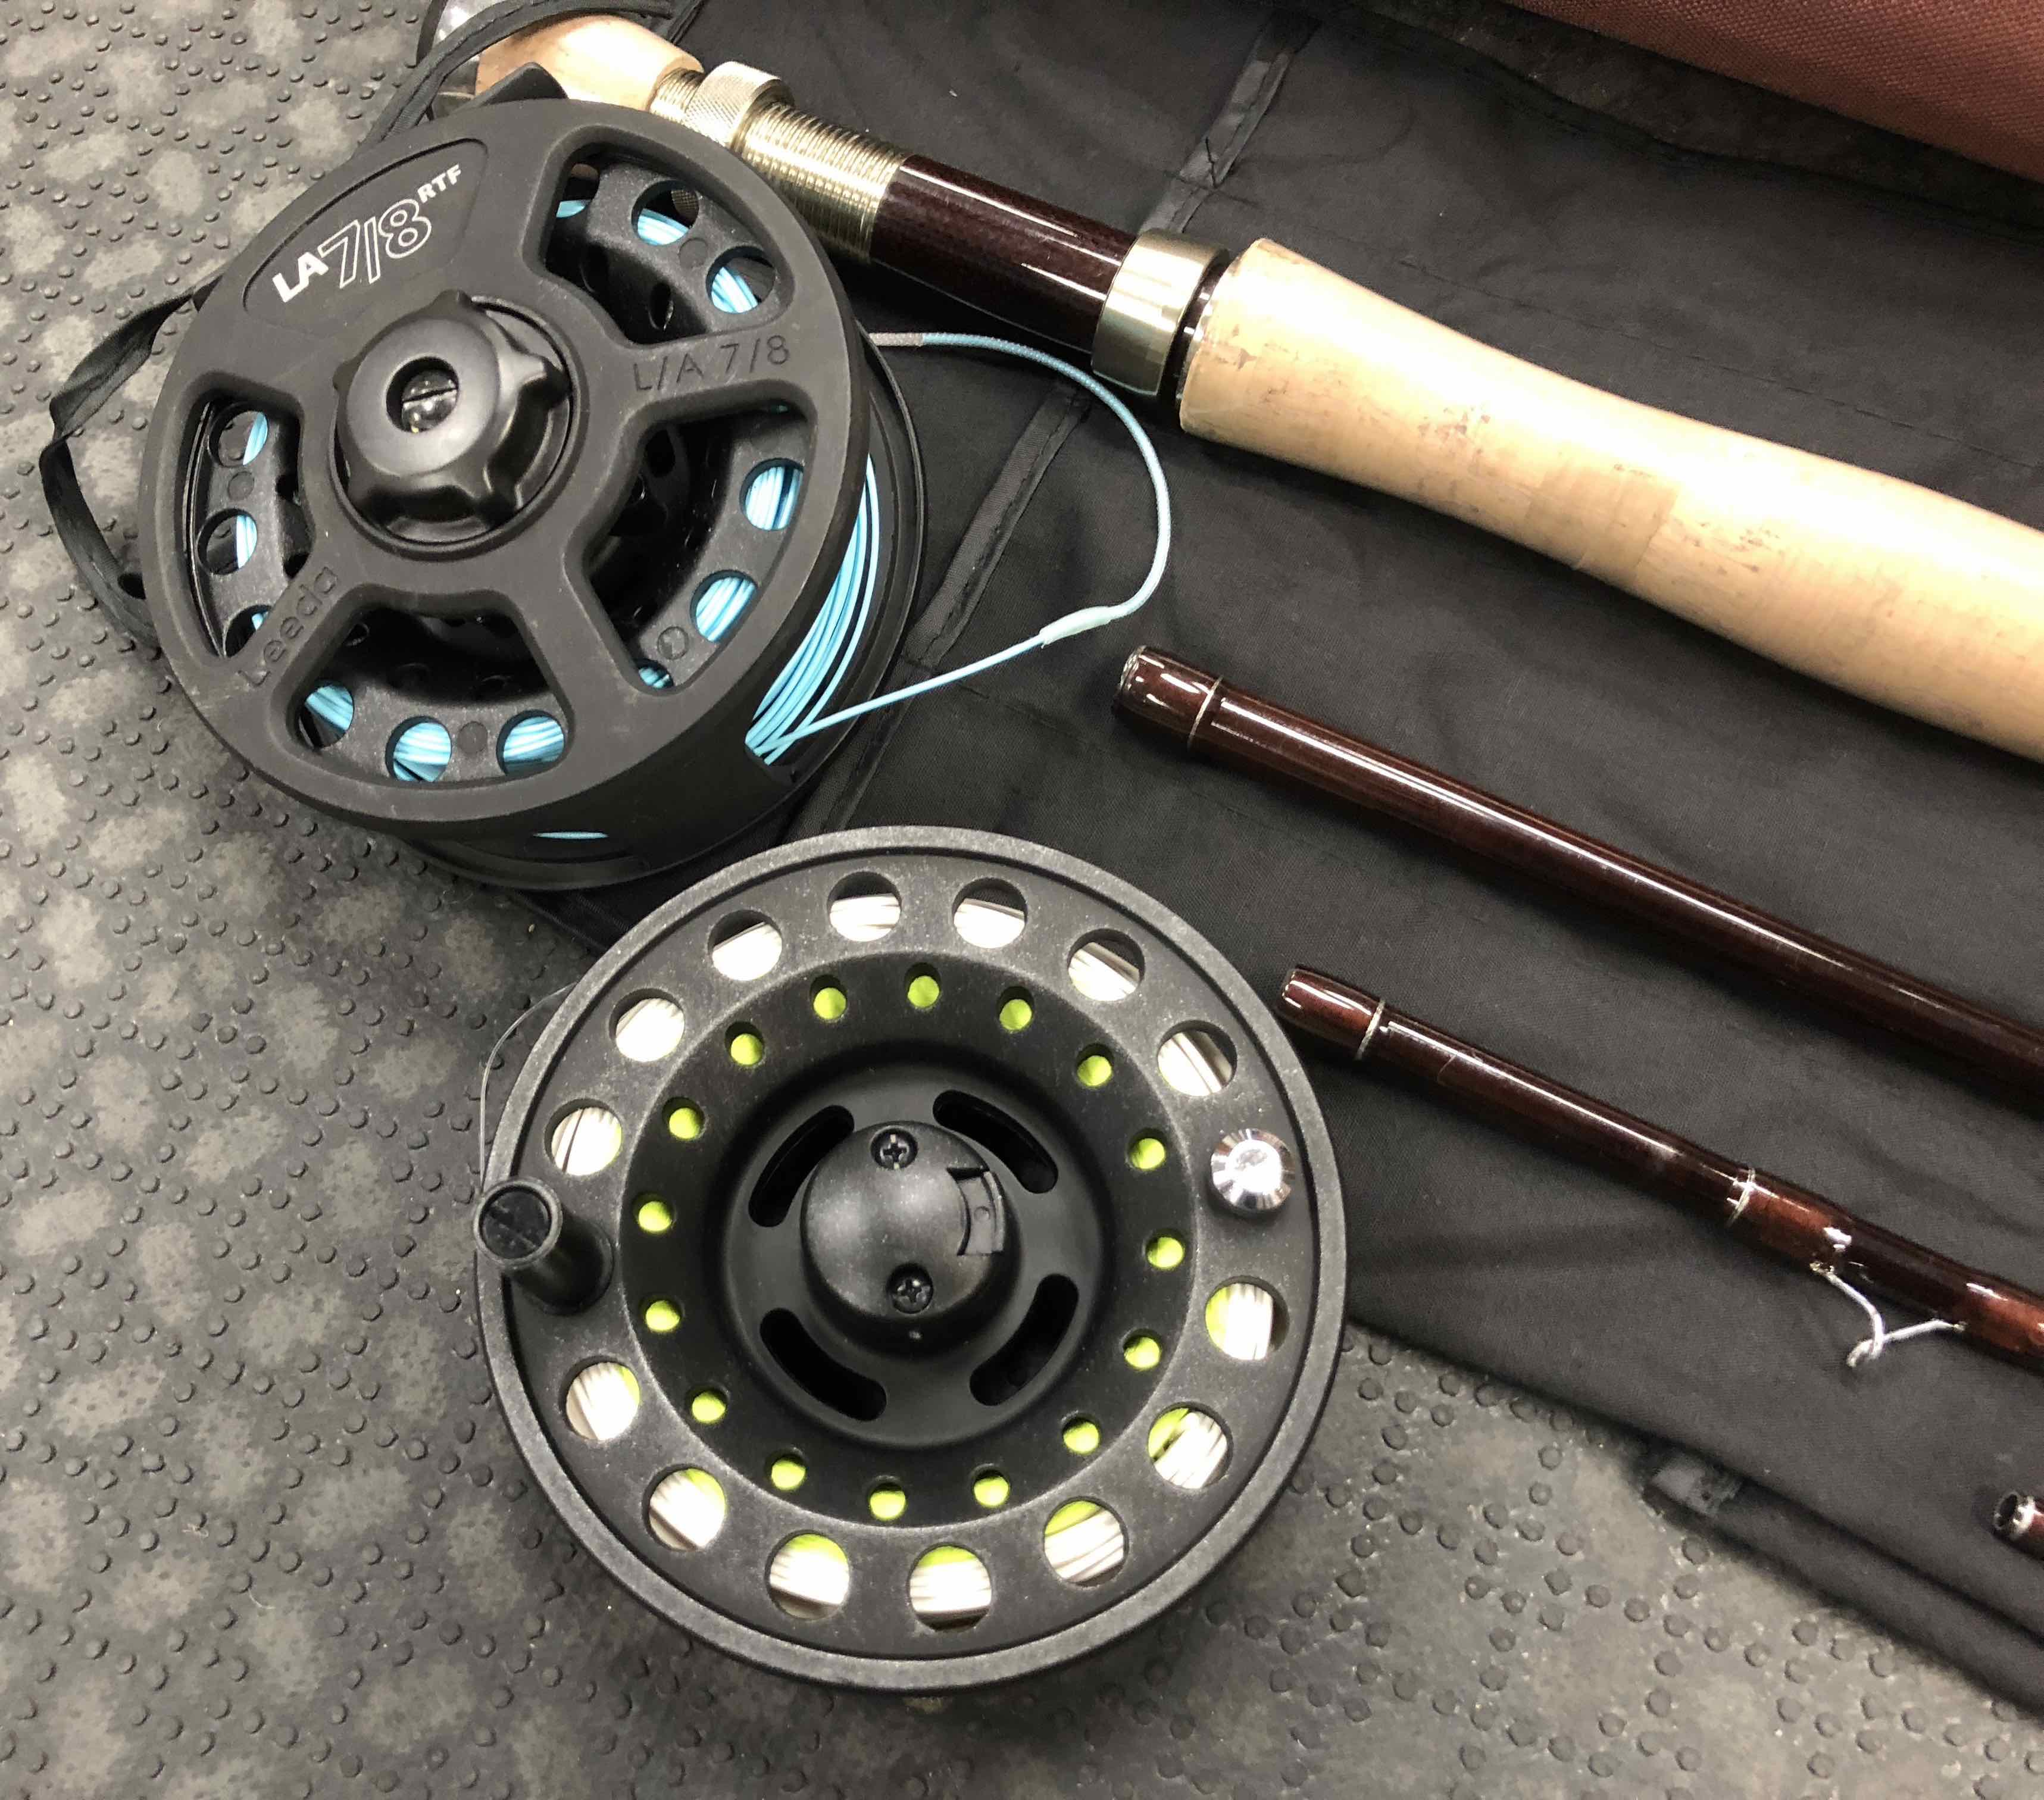 Flextec CDX 66 Series Fly Rod - 4pc 10' 7/8Wt c/w Flextec Large Arbour Fly Reel, Spare Spool & Fly Line - LIKE NEW! - $100